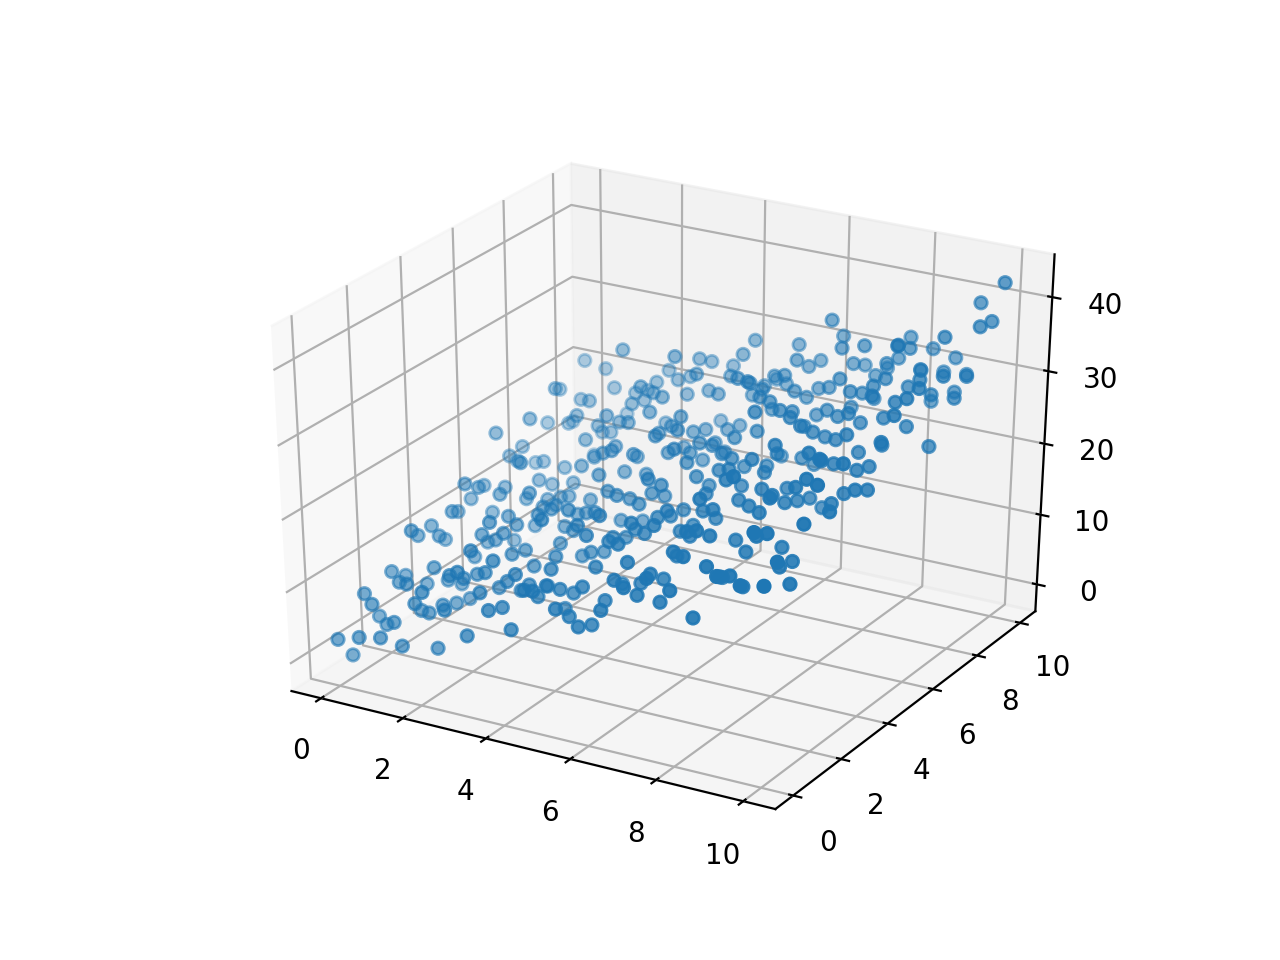 Multi Variable Regression - Machine Learning with PyTorch